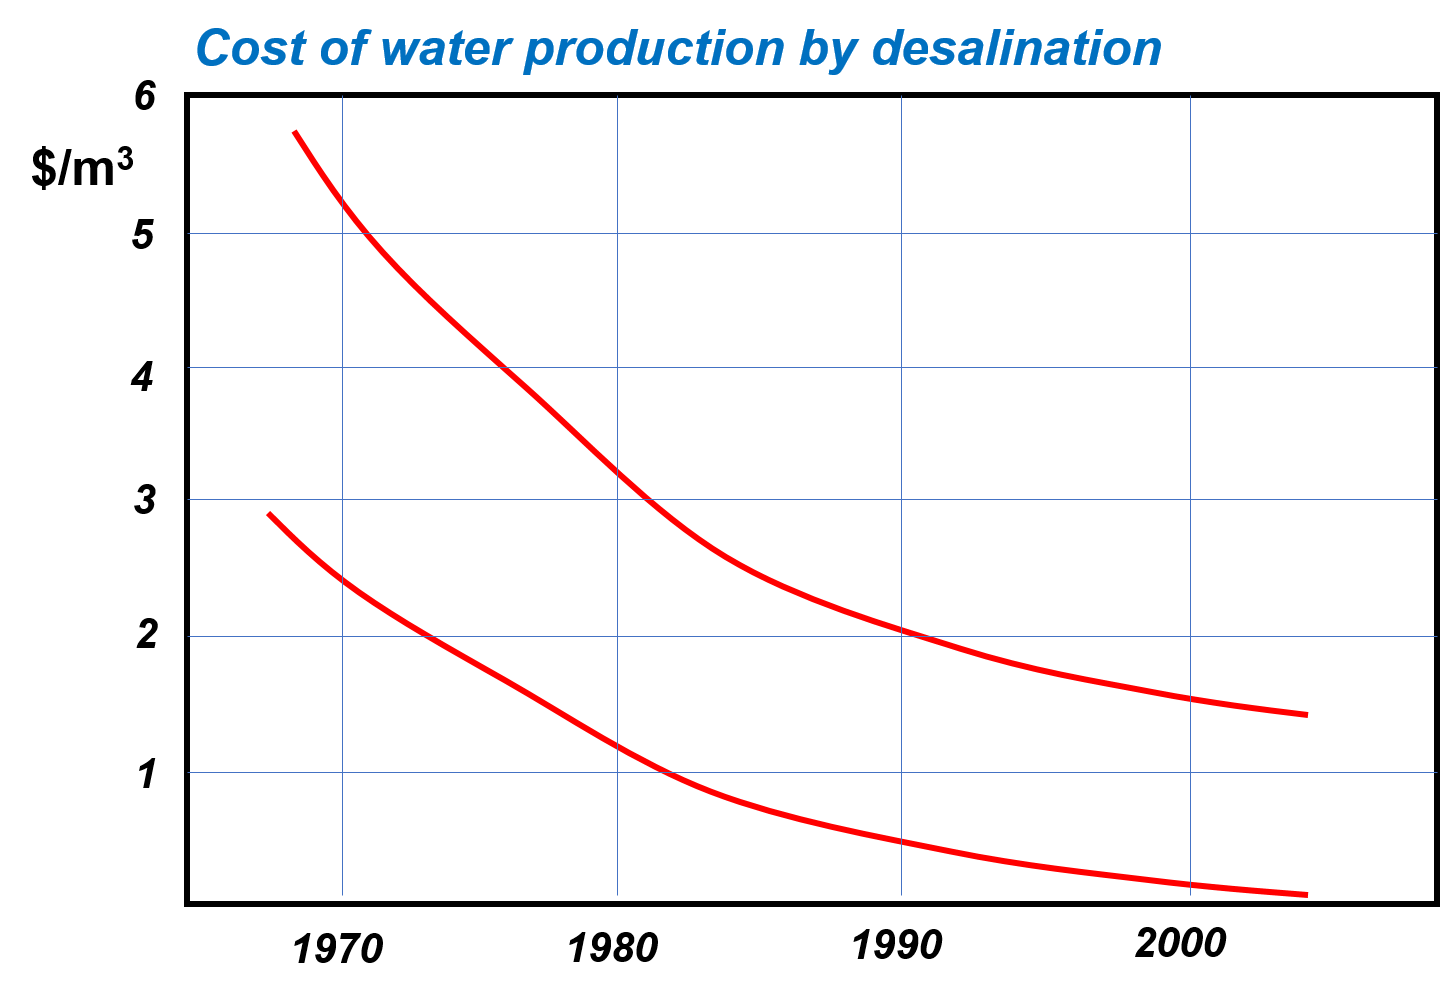 water desalination cost literature review and In his heralded 1994 annual review of energy and the environment article, which established the field of integrated water-energy studies, peter gleick employed a full-scale life cycle analysis of water and energy resources to explicate and quantify the water intensity of energy resource.